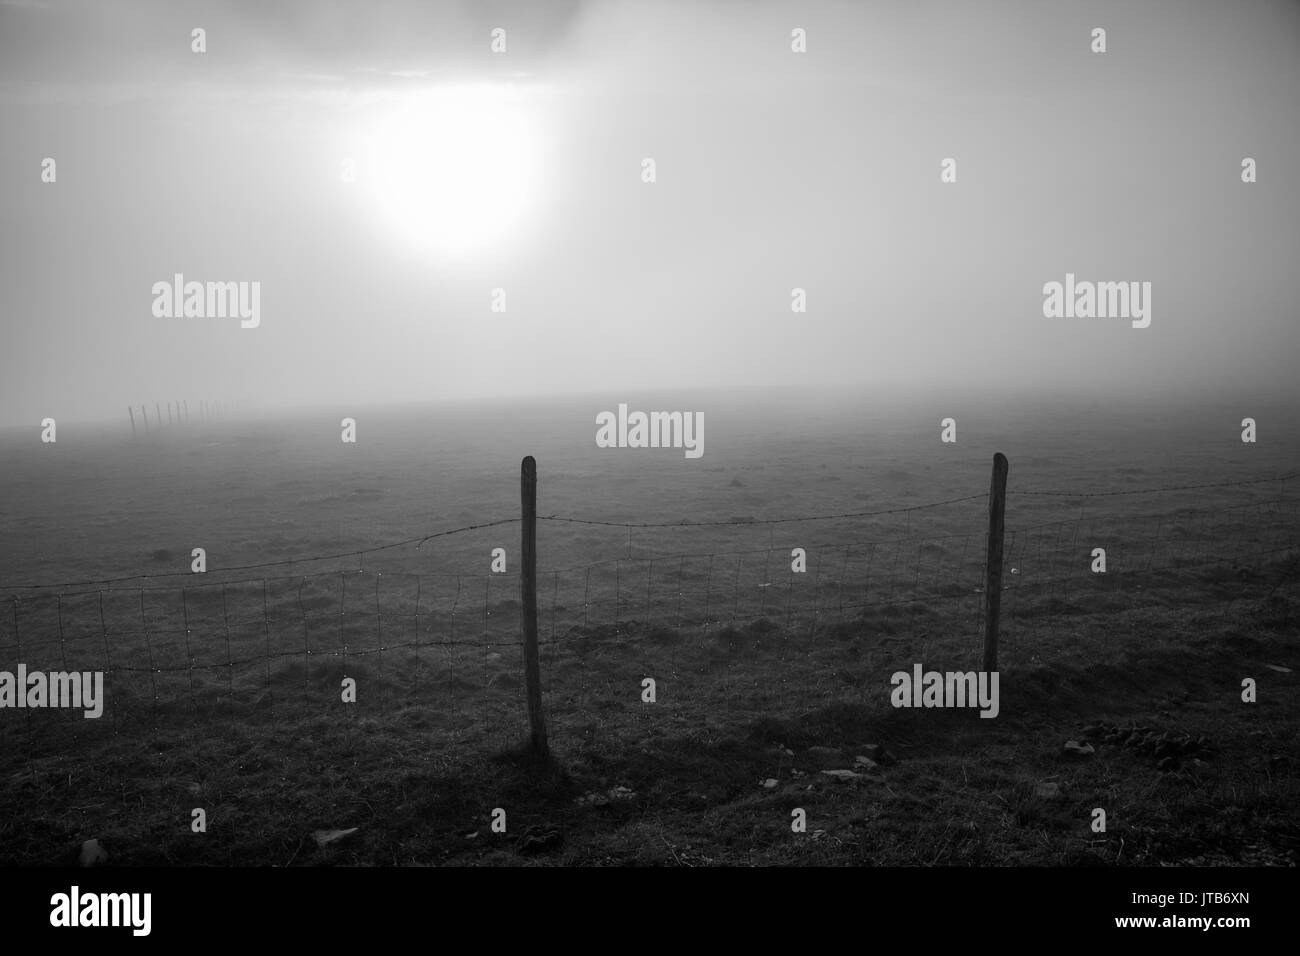 Morning sun filtered through fog on a mountain, with a fence silhouette - Stock Image